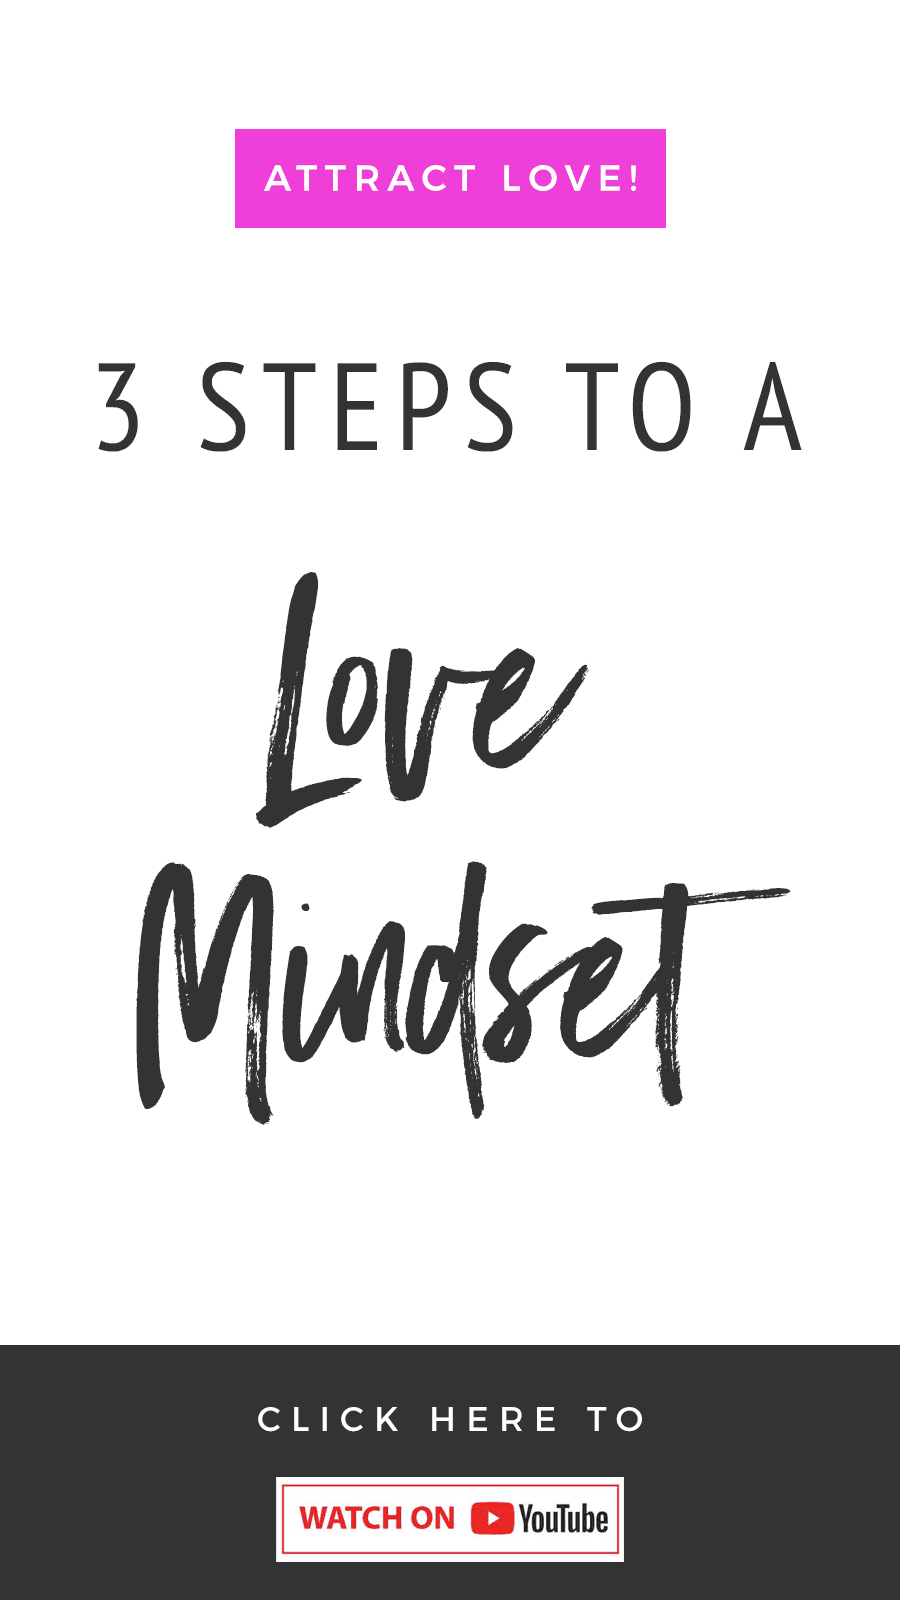 Attract Love! 3 Steps To A Love Mindset